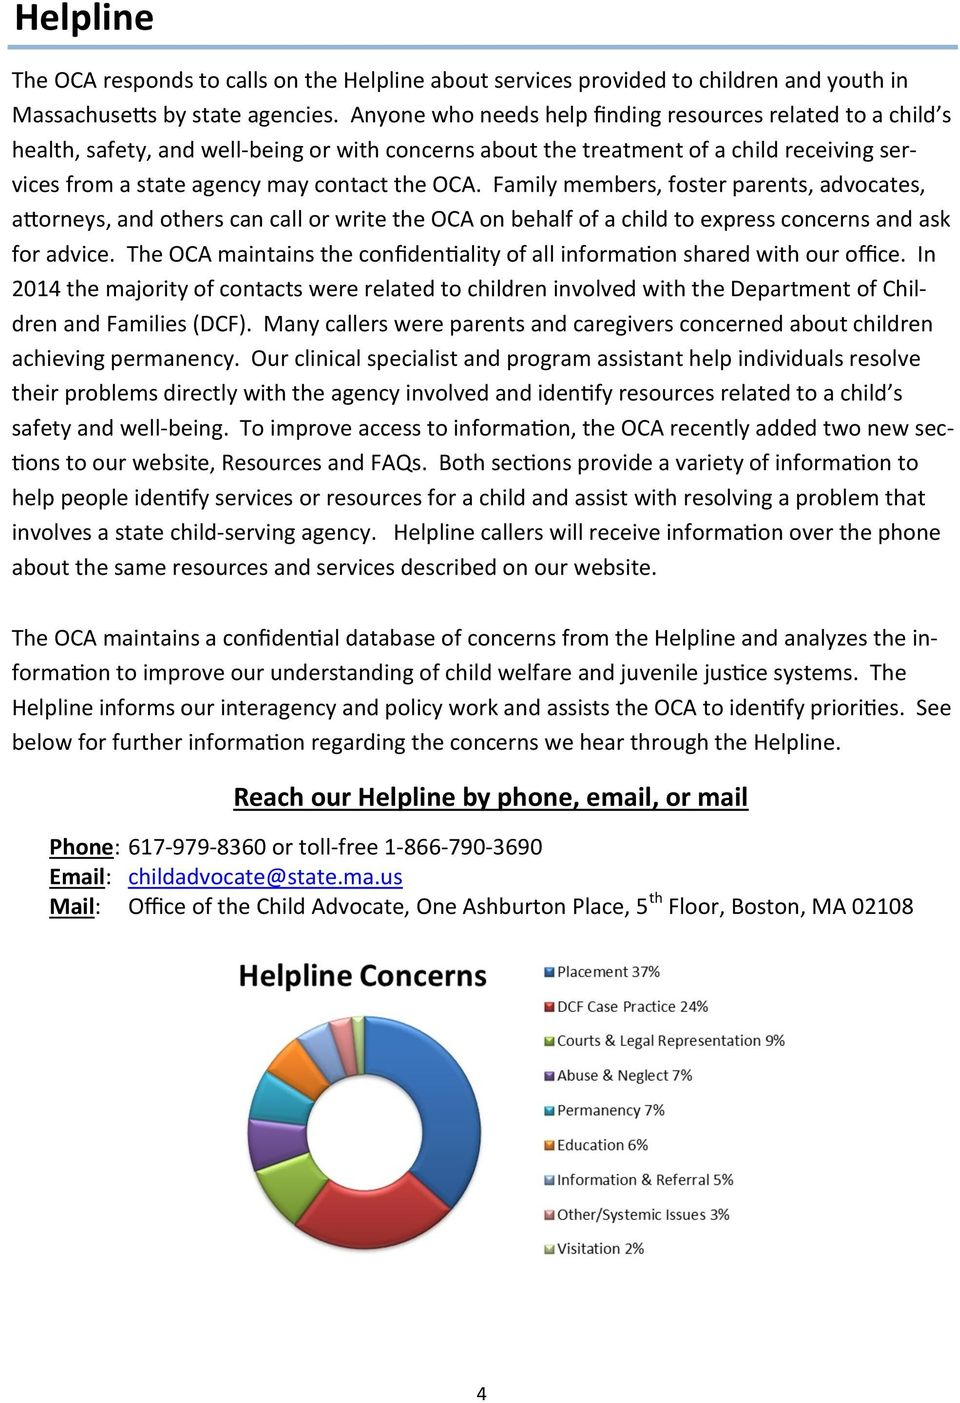 Family members, foster parents, advocates, attorneys, and others can call or write the OCA on behalf of a child to express concerns and ask for advice.